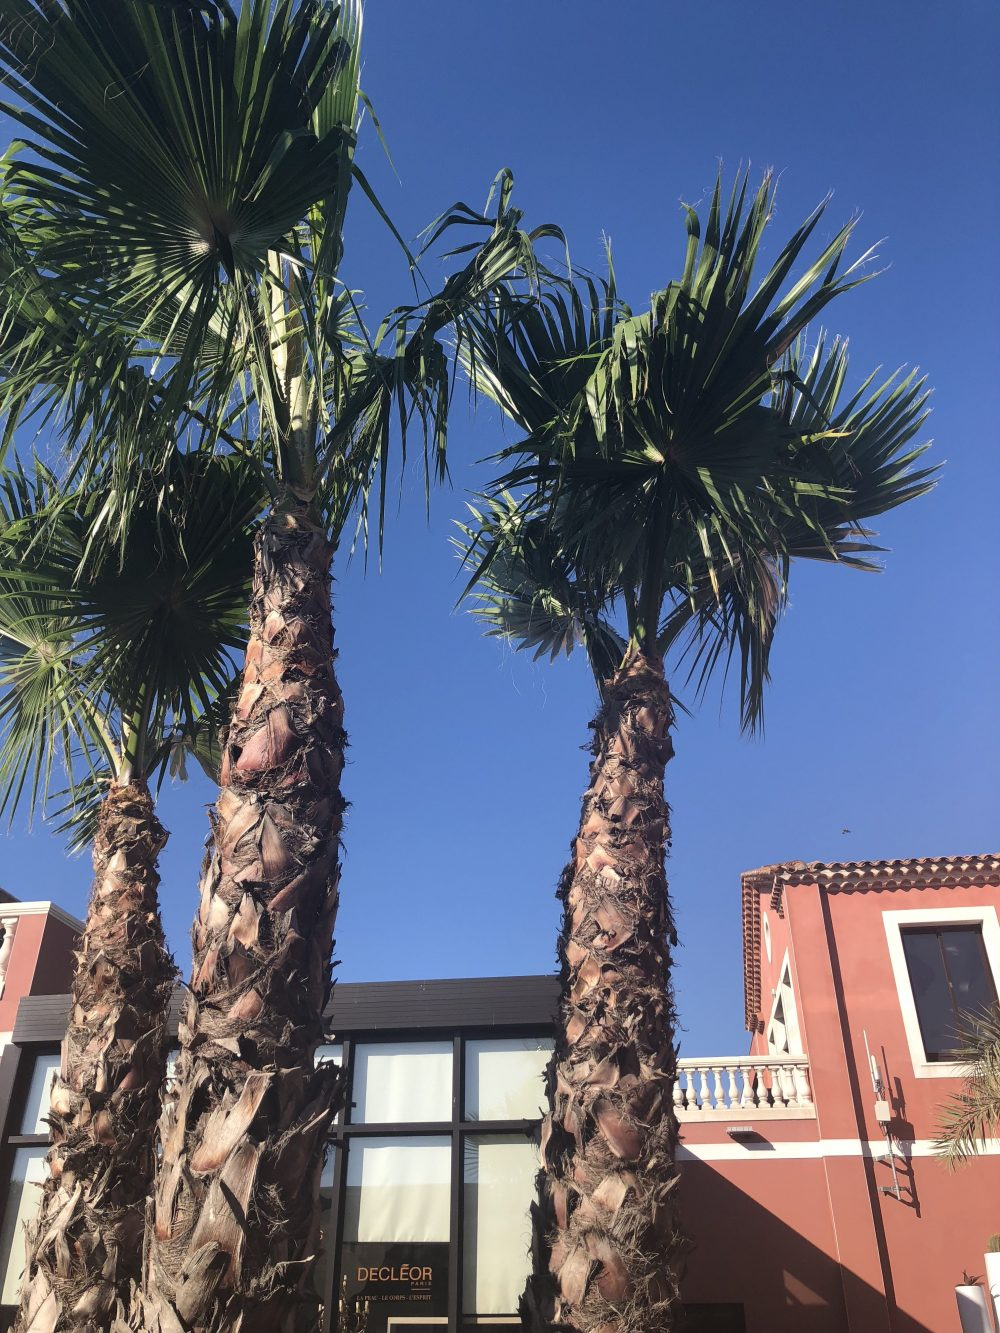 palm trees next to a pink building